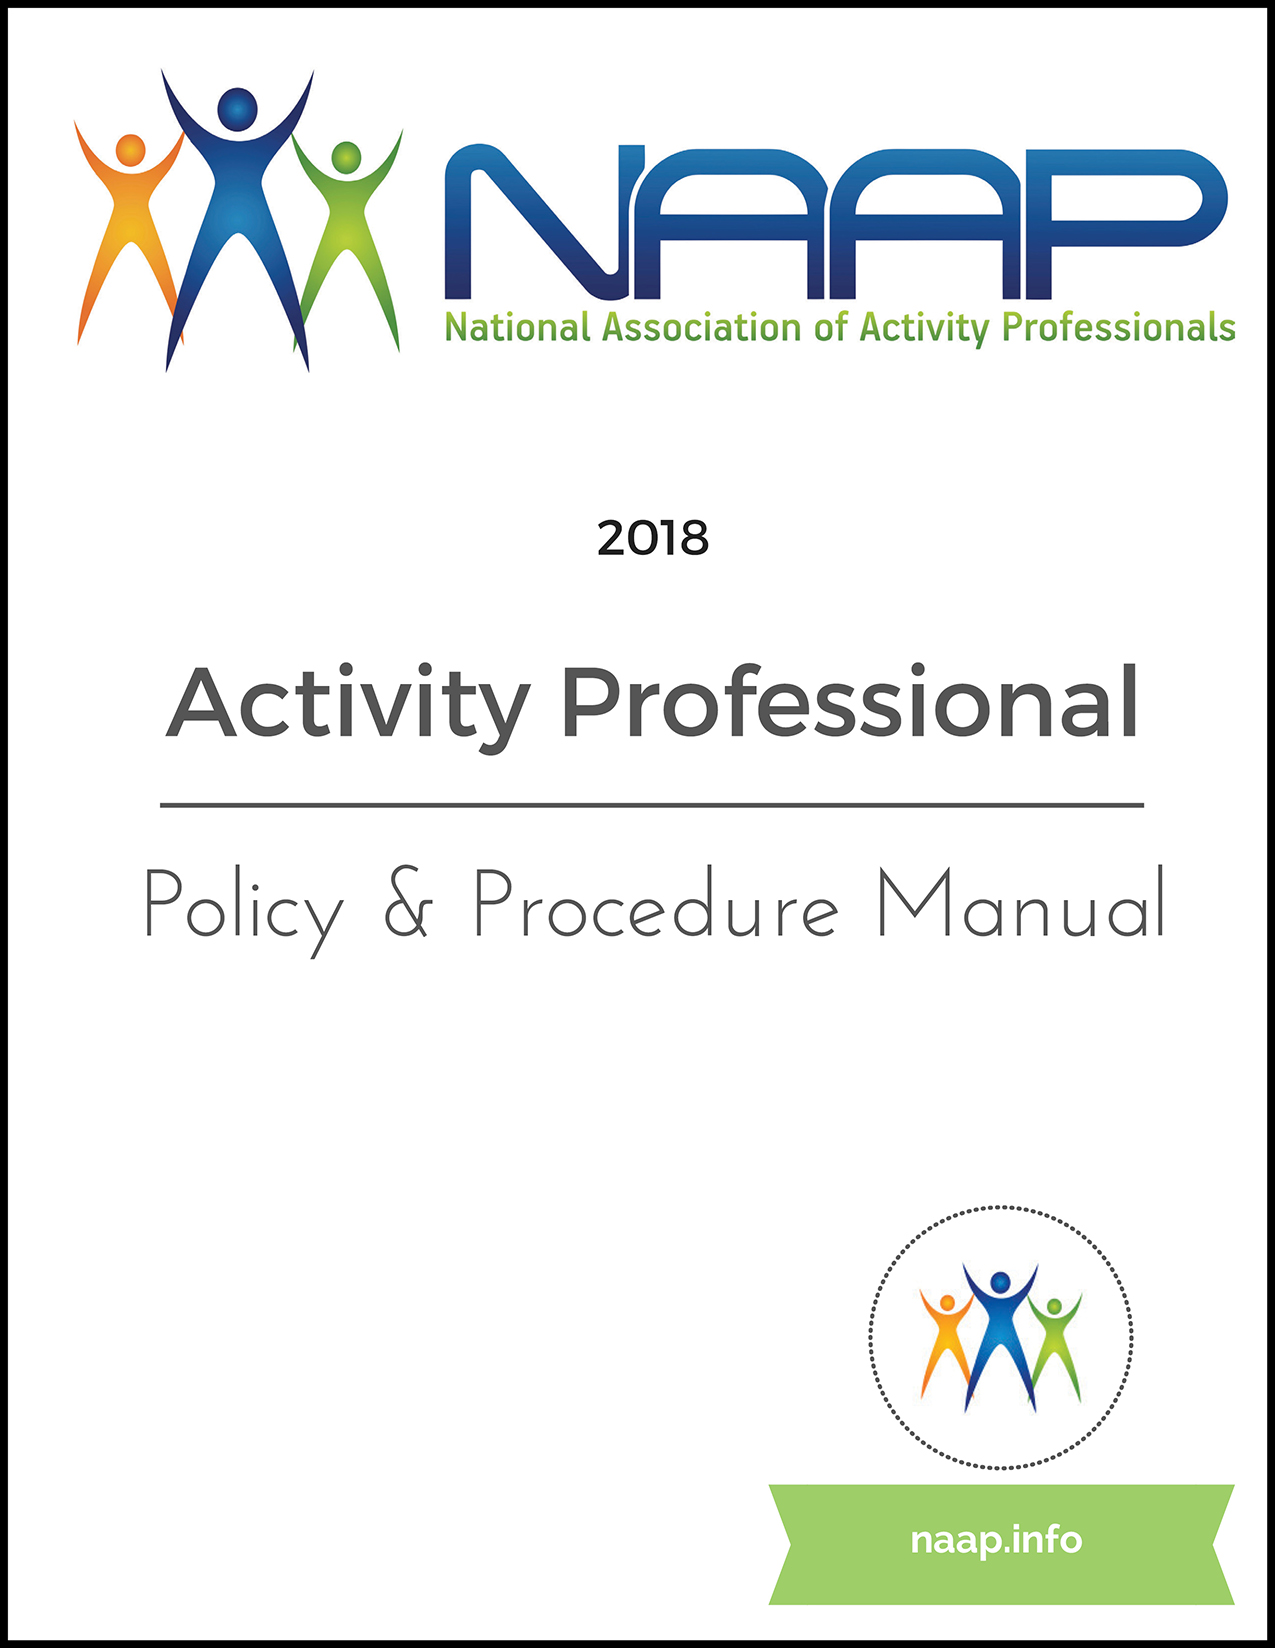 NAAP Policy & Procedure Manual 2018